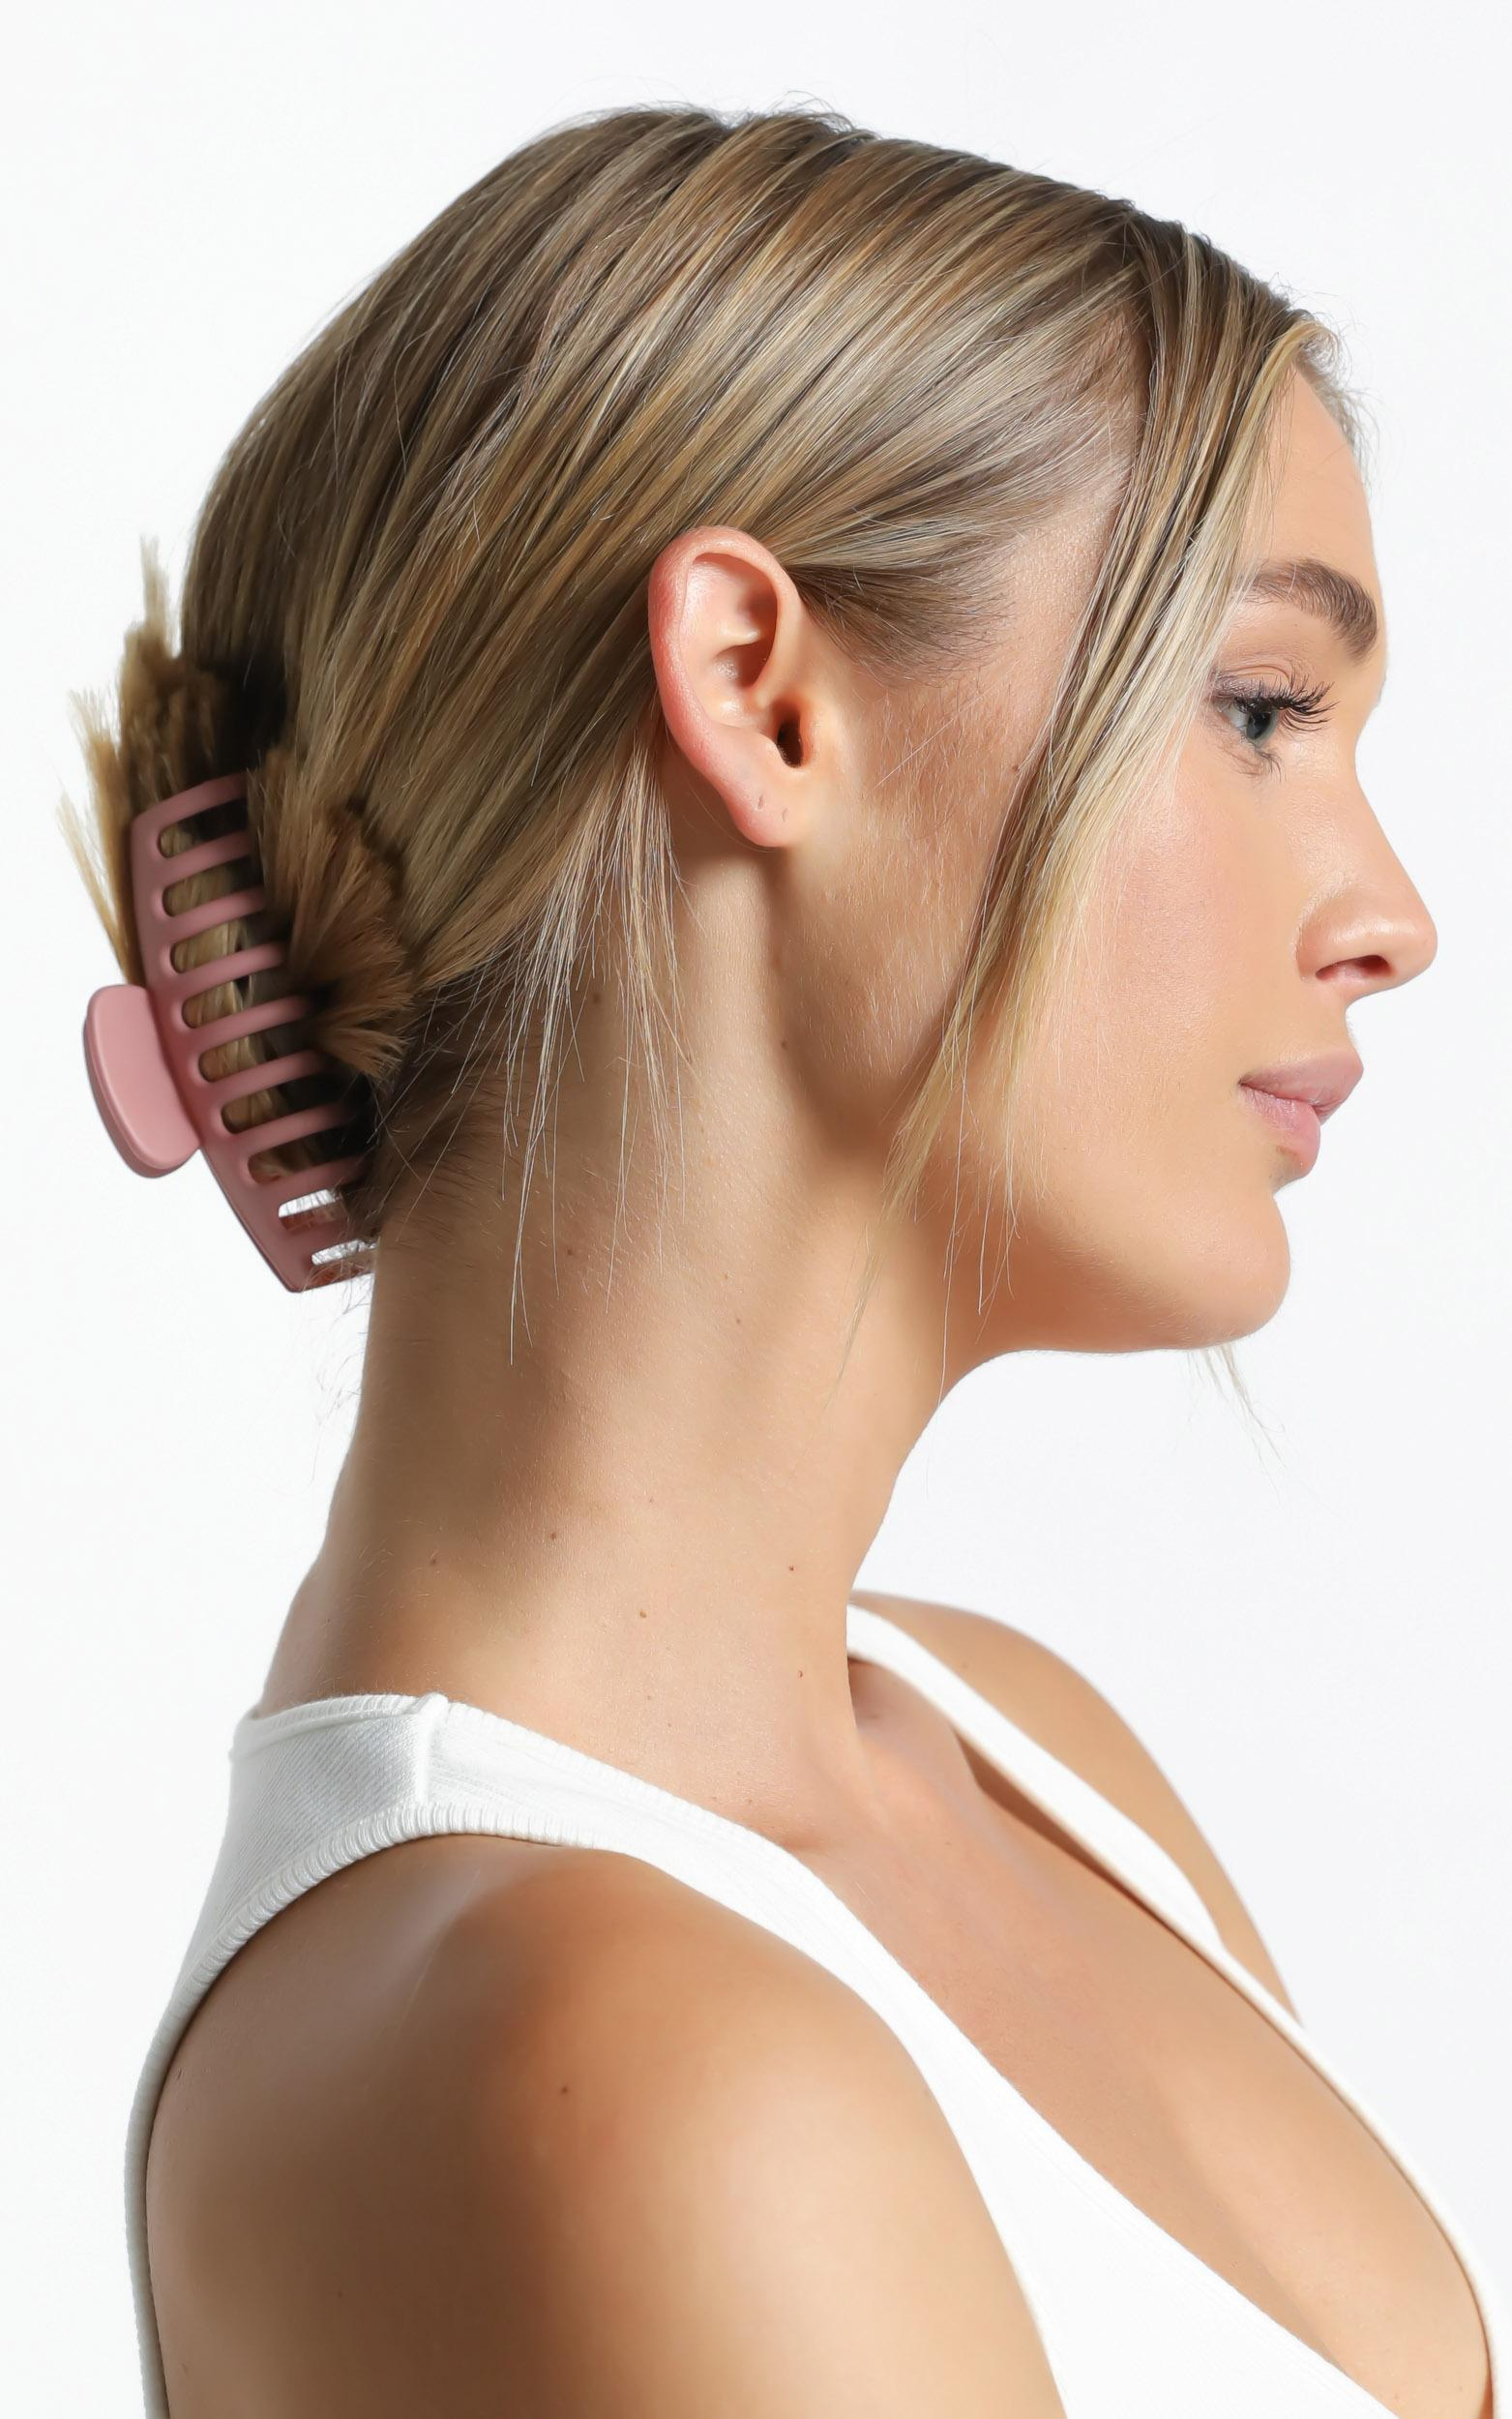 Bring It Back Hair Clip in Pink, , hi-res image number null